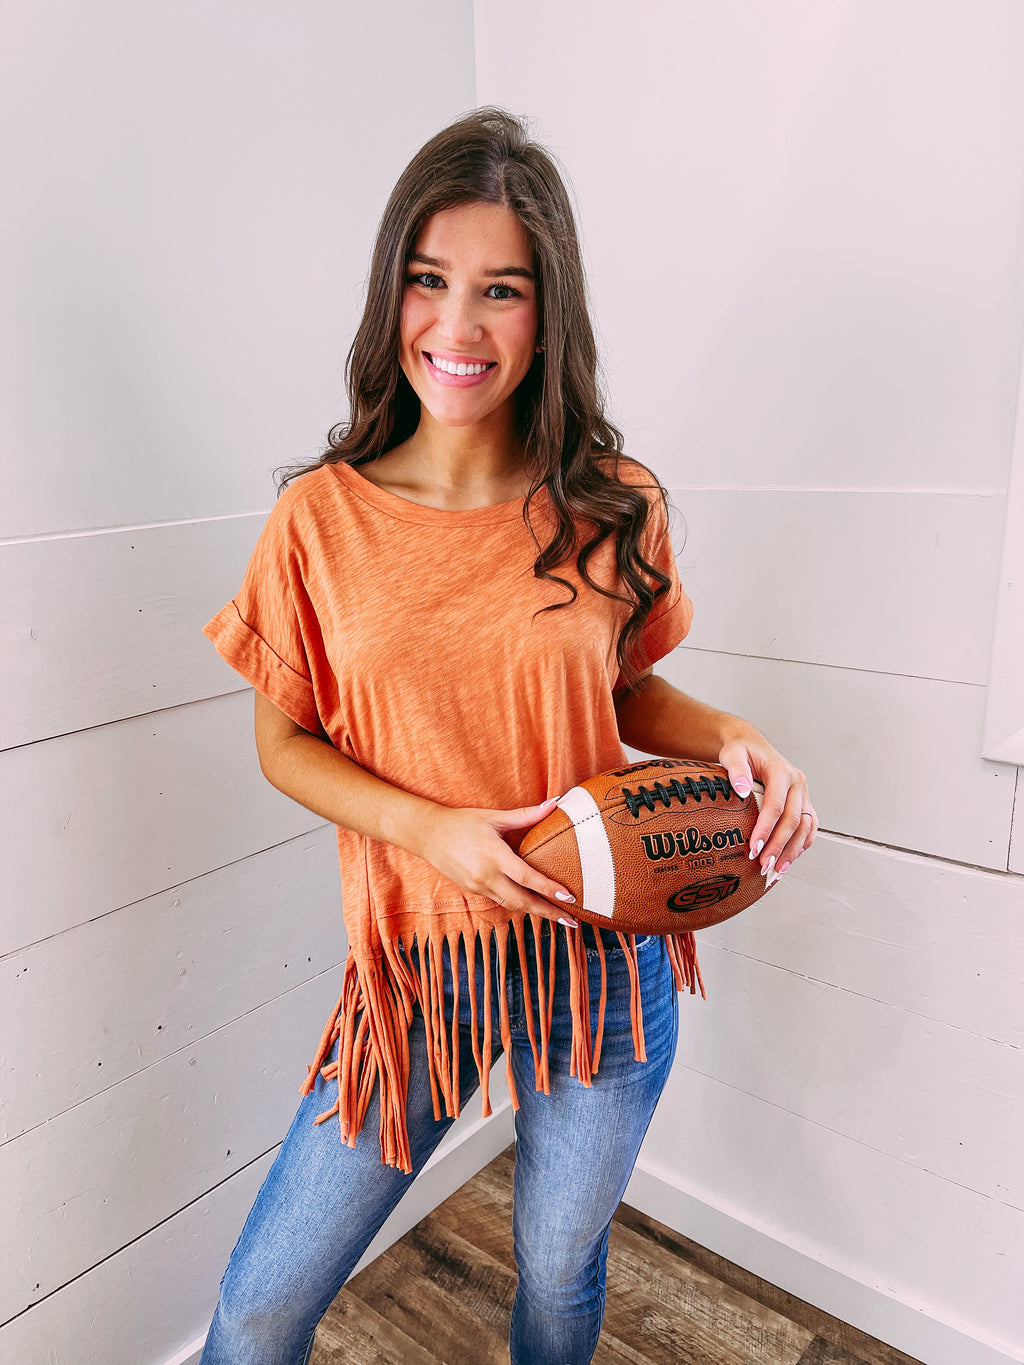 Gretchen Oversized Blouse - caramel